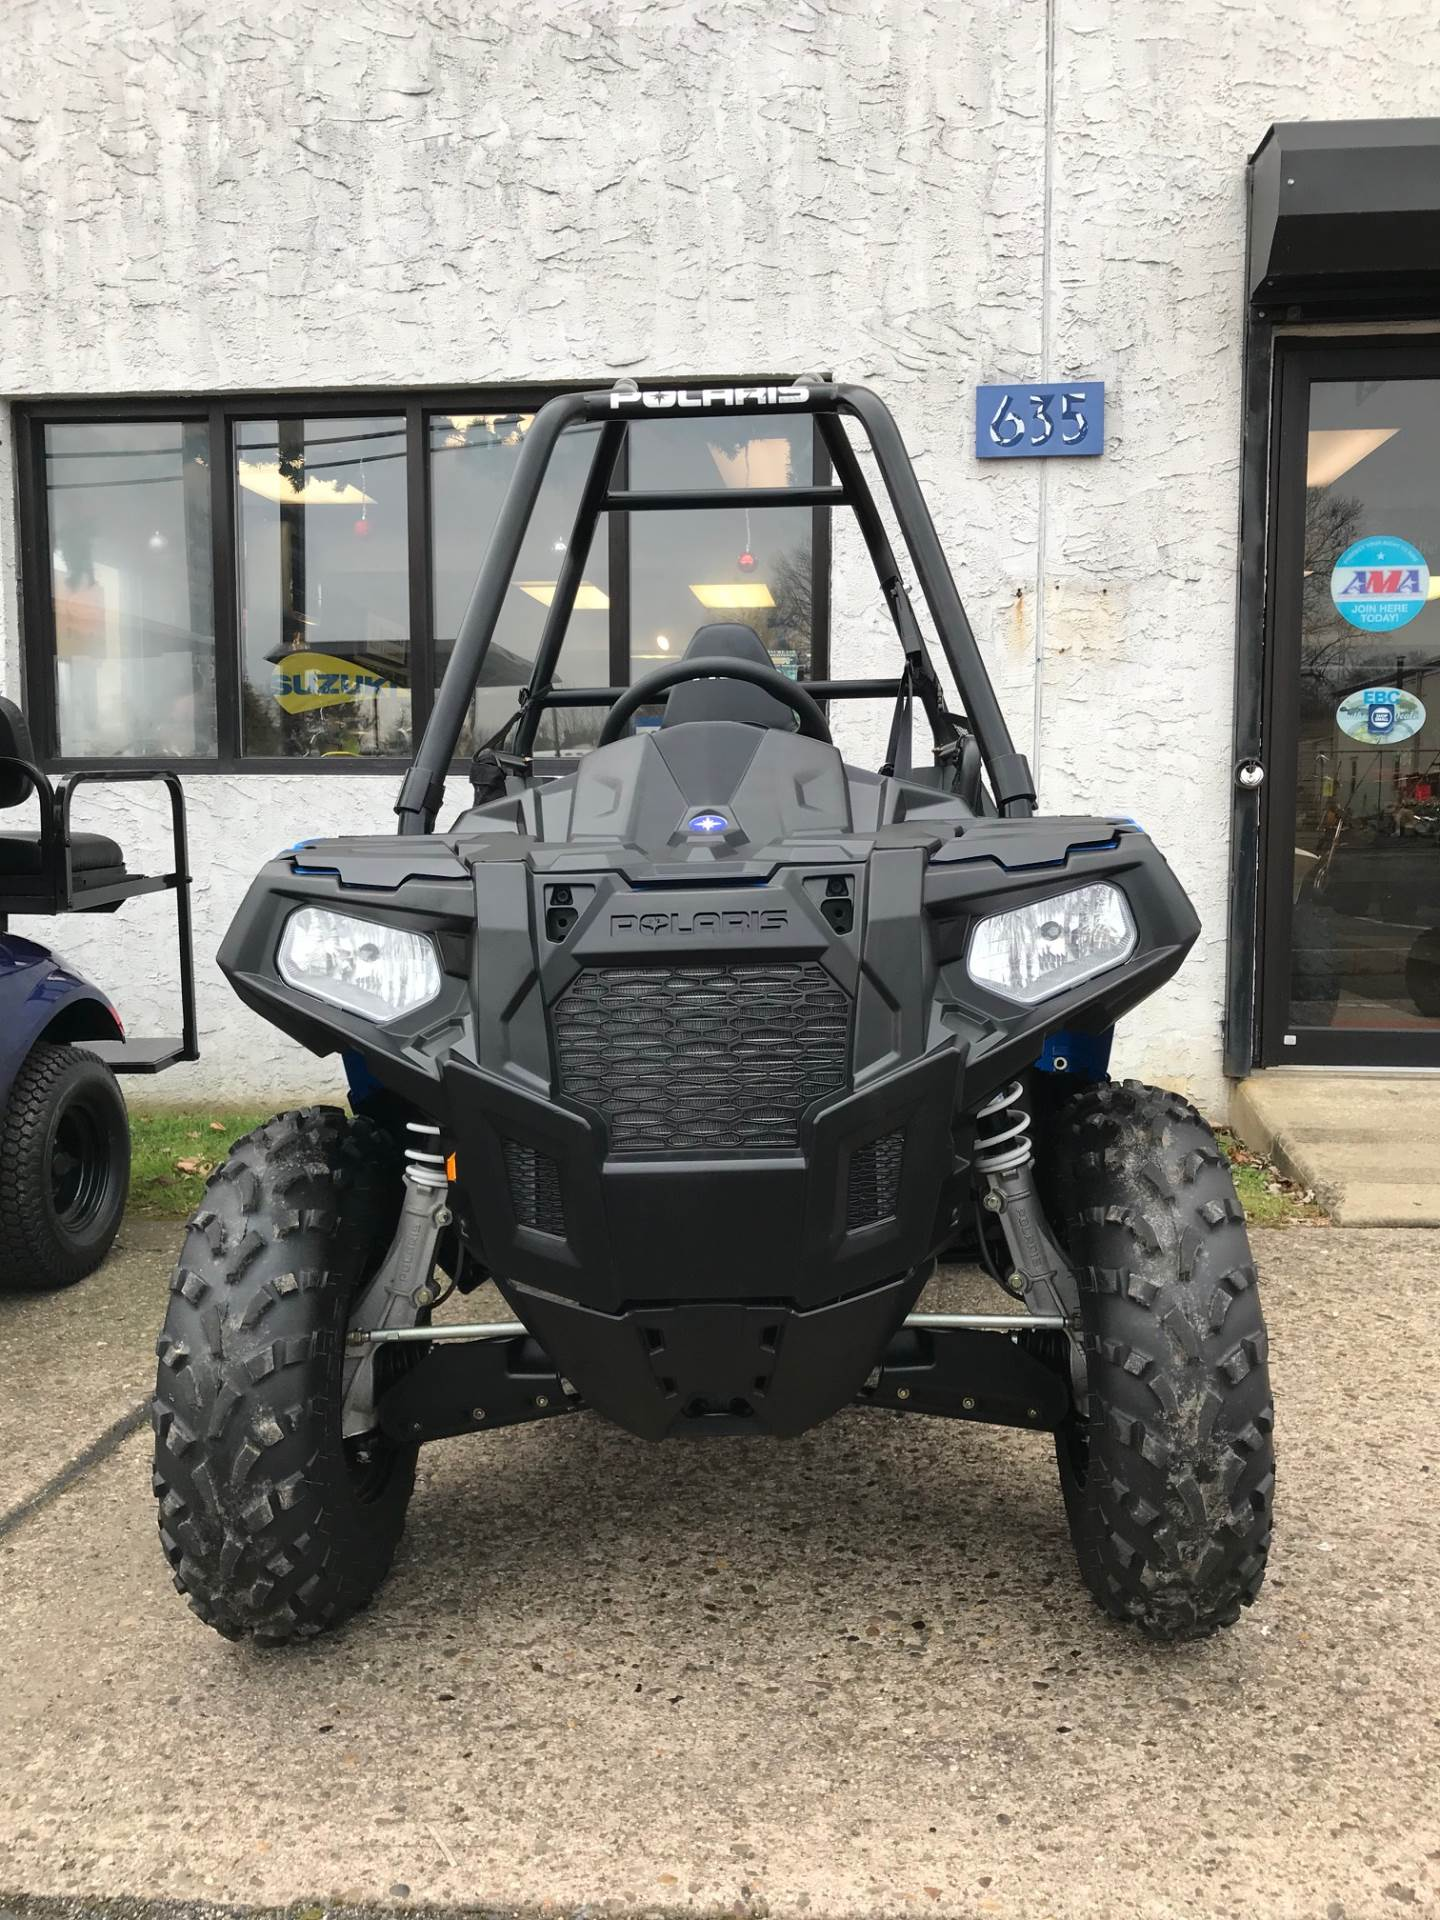 2015 Polaris ACE™ 570 in Trevose, Pennsylvania